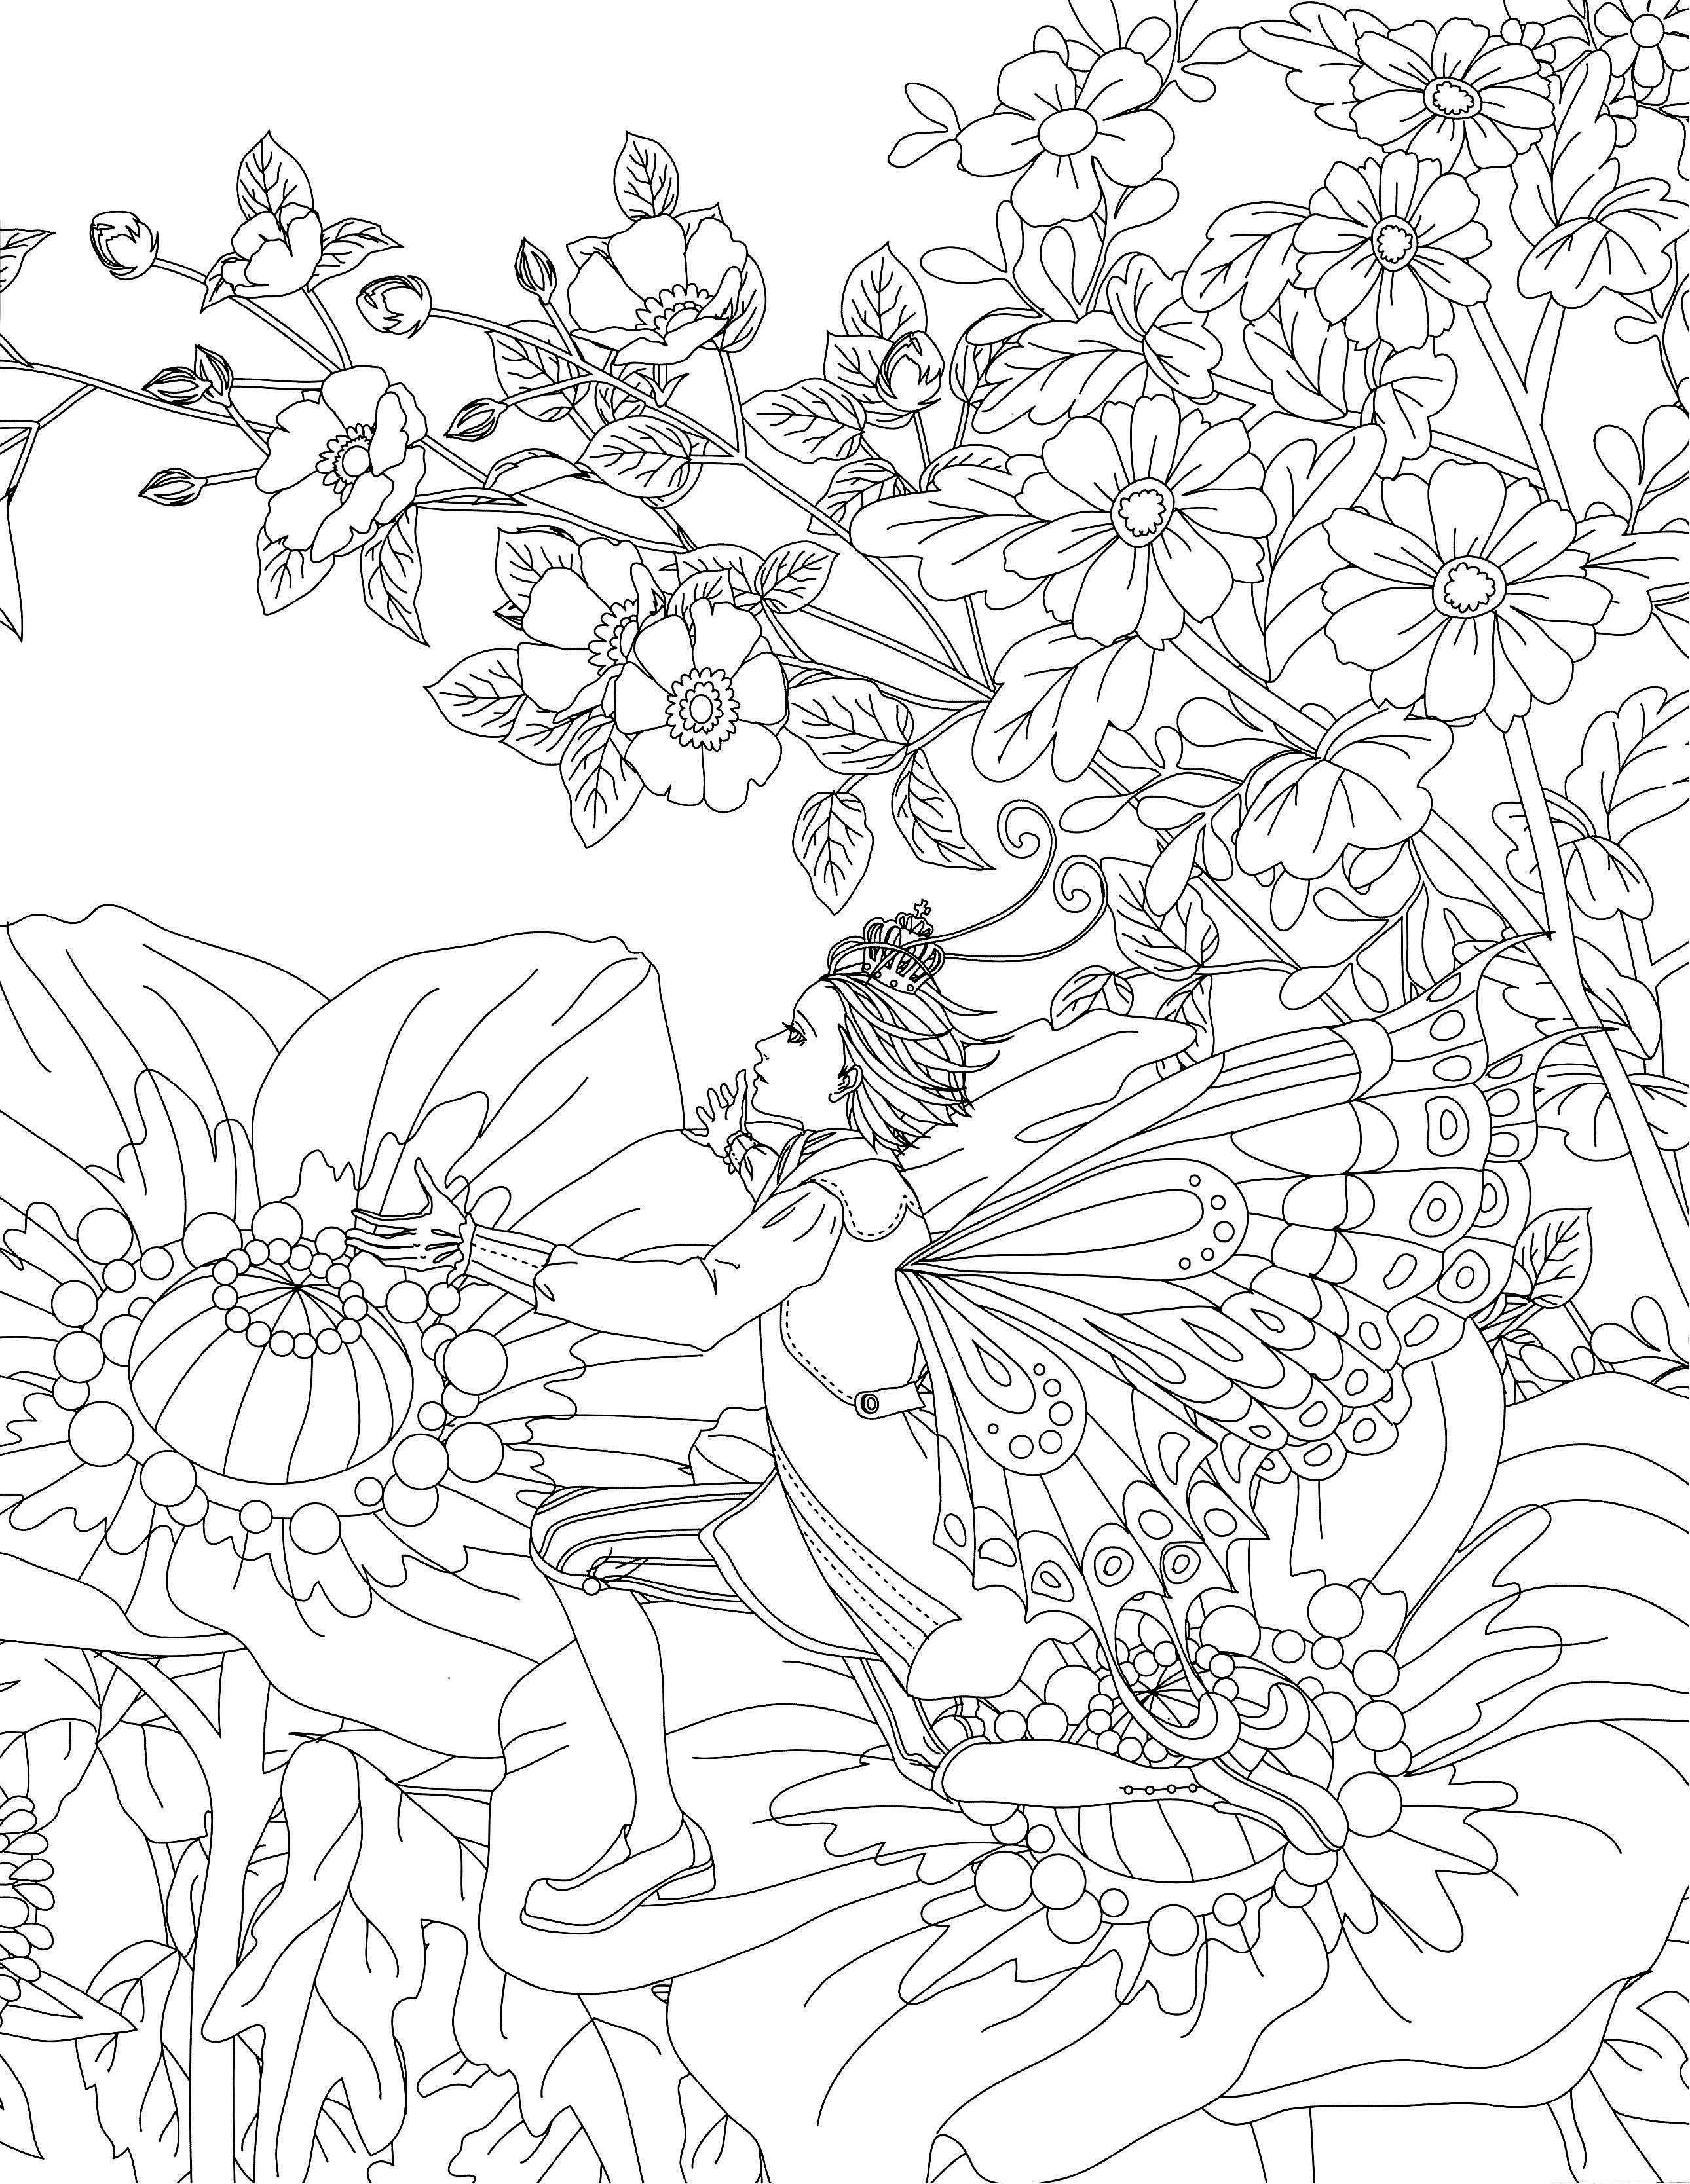 Classic Fairy Tales Coloring Book - Kayliebooks